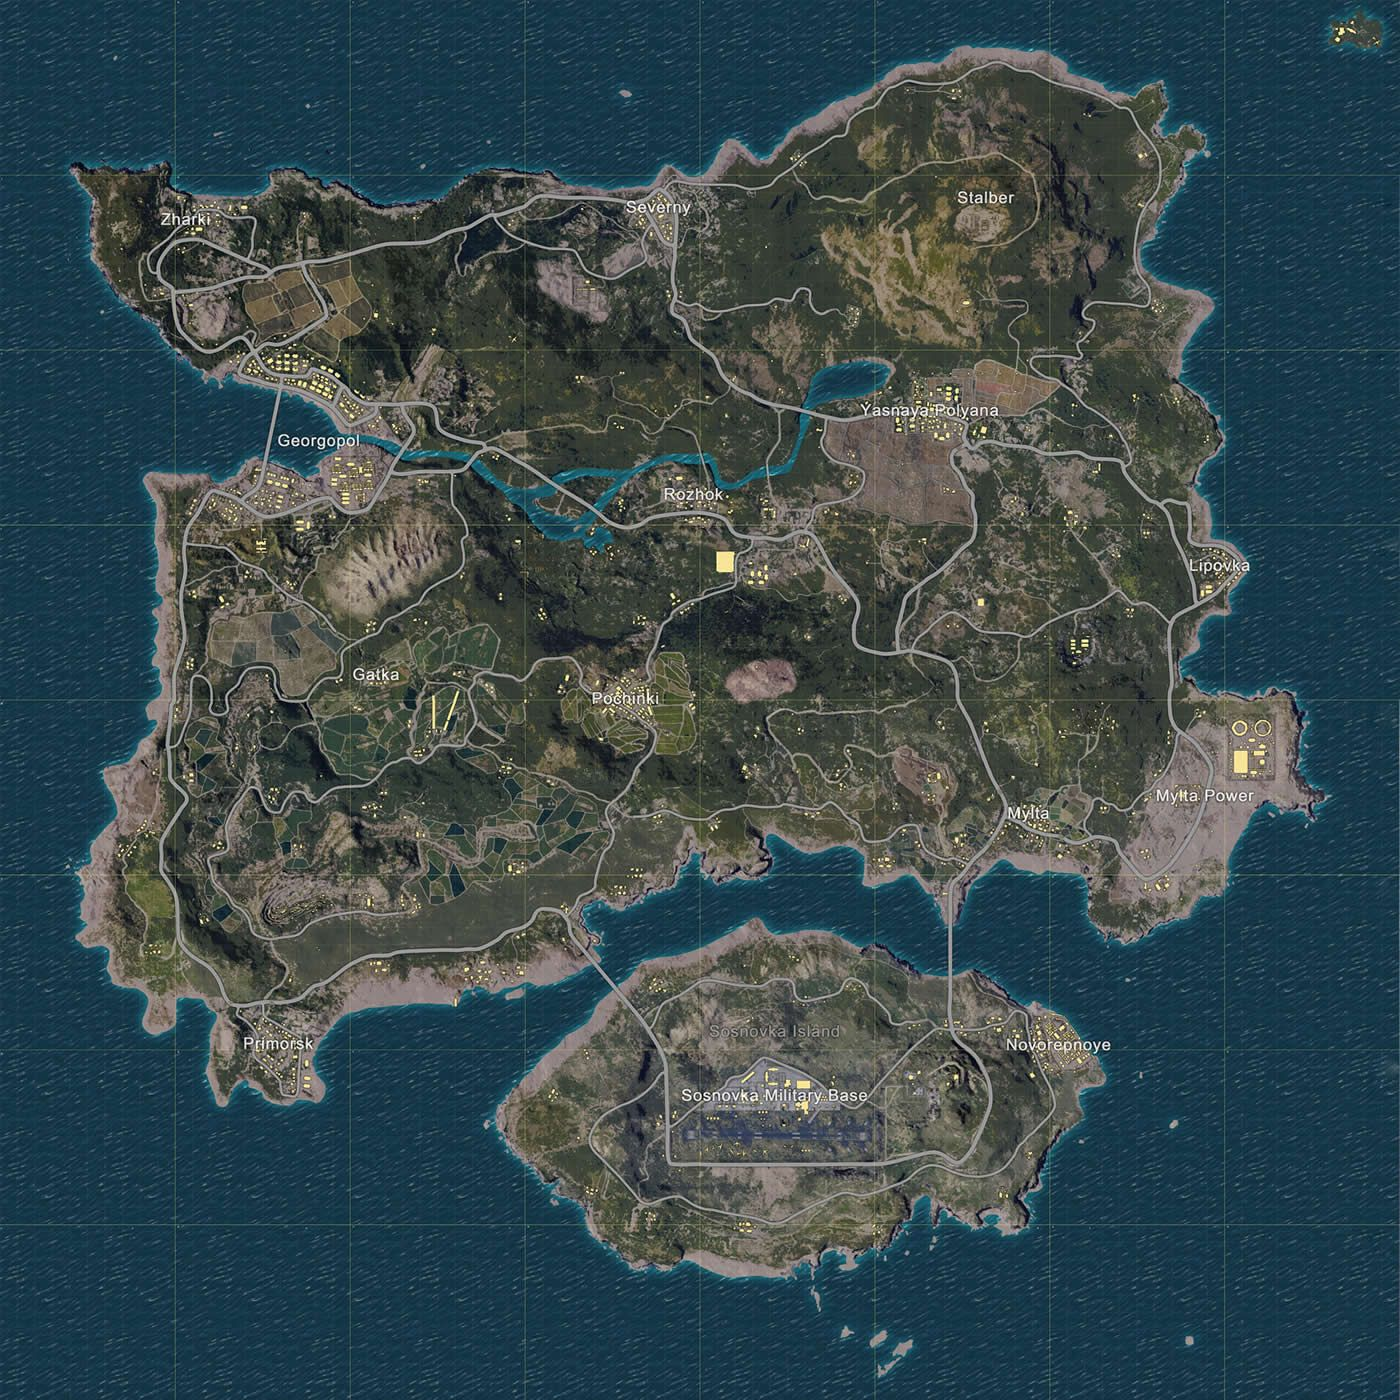 A Complete Guide To The Battlegrounds Map And Its Locations Gambar Serigala Seni Objek Gambar